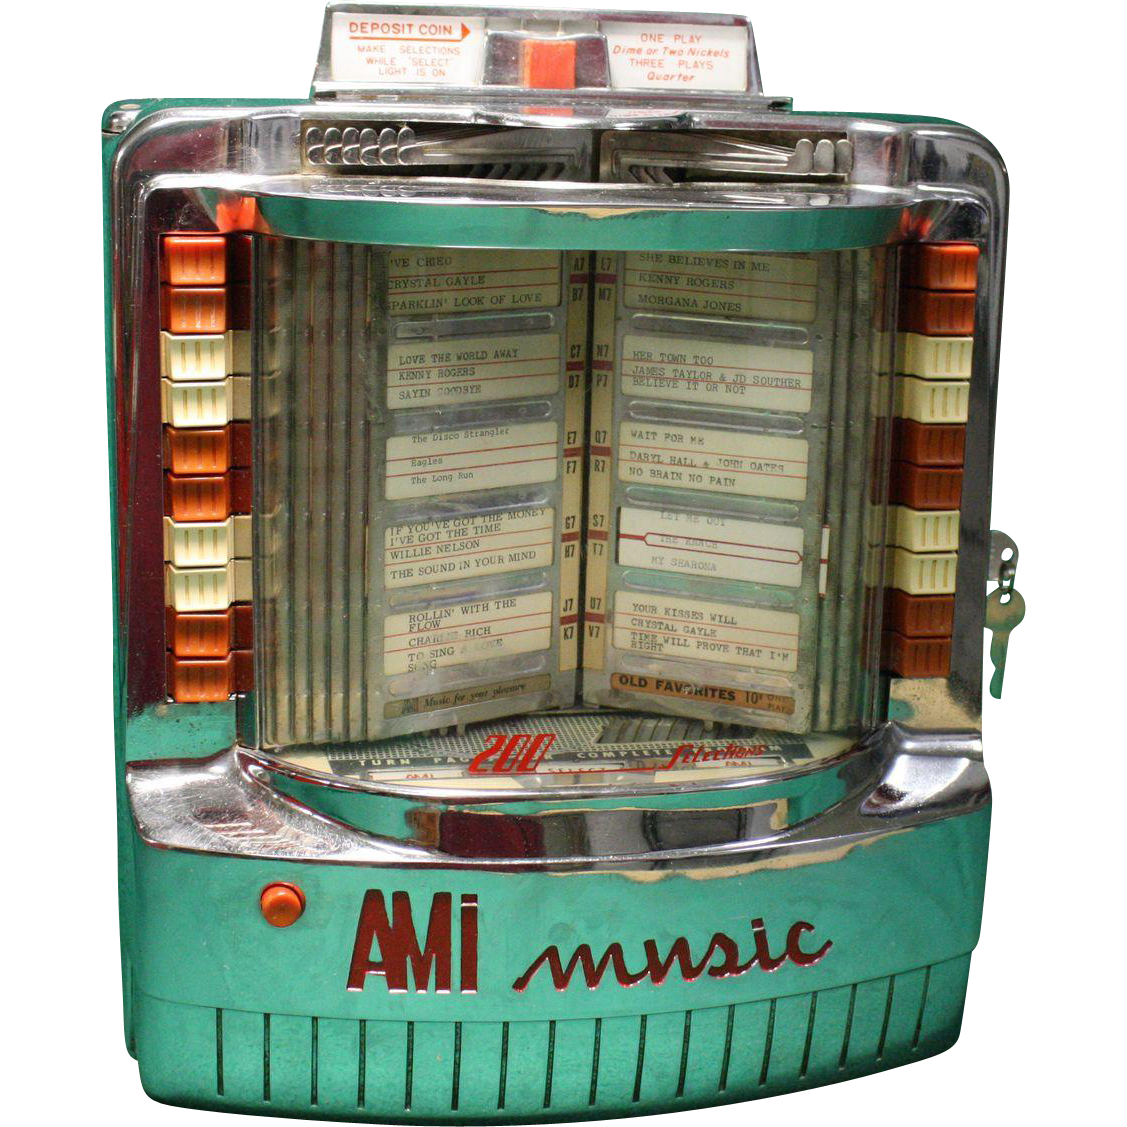 AMI WQ 200 Jukebox Wall Box 1960 SOLD On Ruby Lane